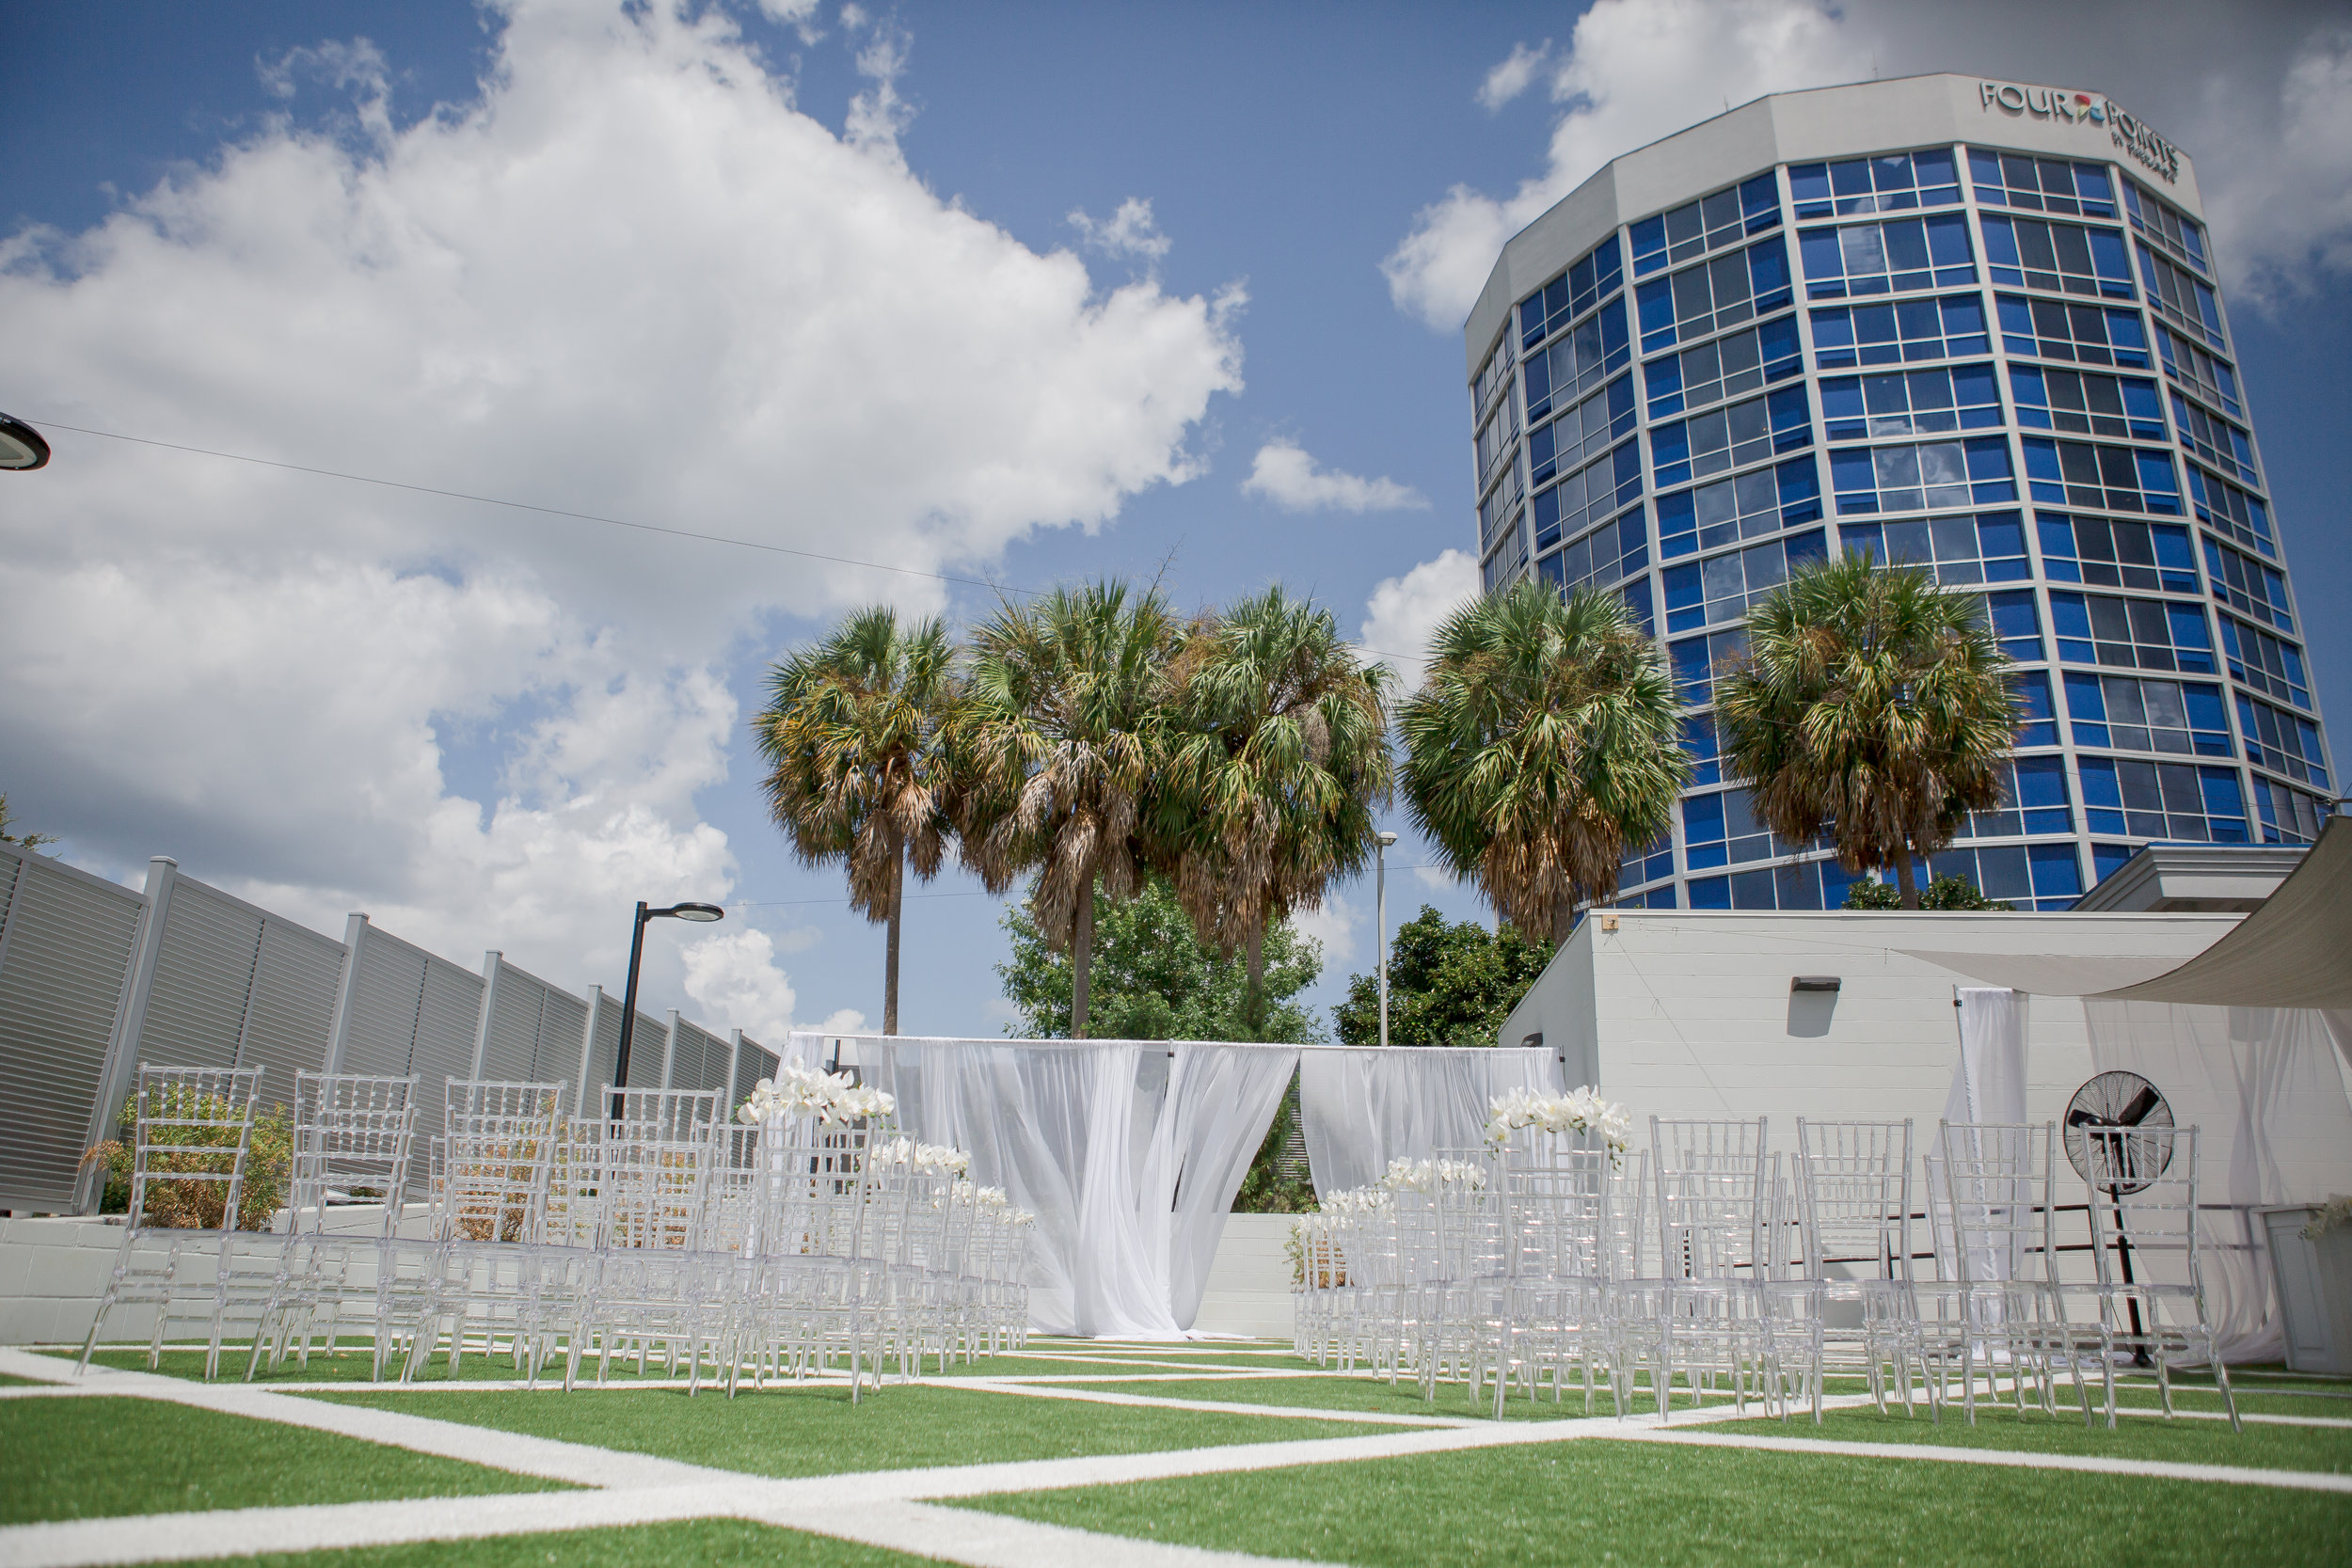 the patio - outdoor - The outdoor patio, located behind the building, features tall privacy fencing and patterned turf flooring. There will also be patio lights draped throughout the space to provide a warm and inviting atmosphere for a variety of events.